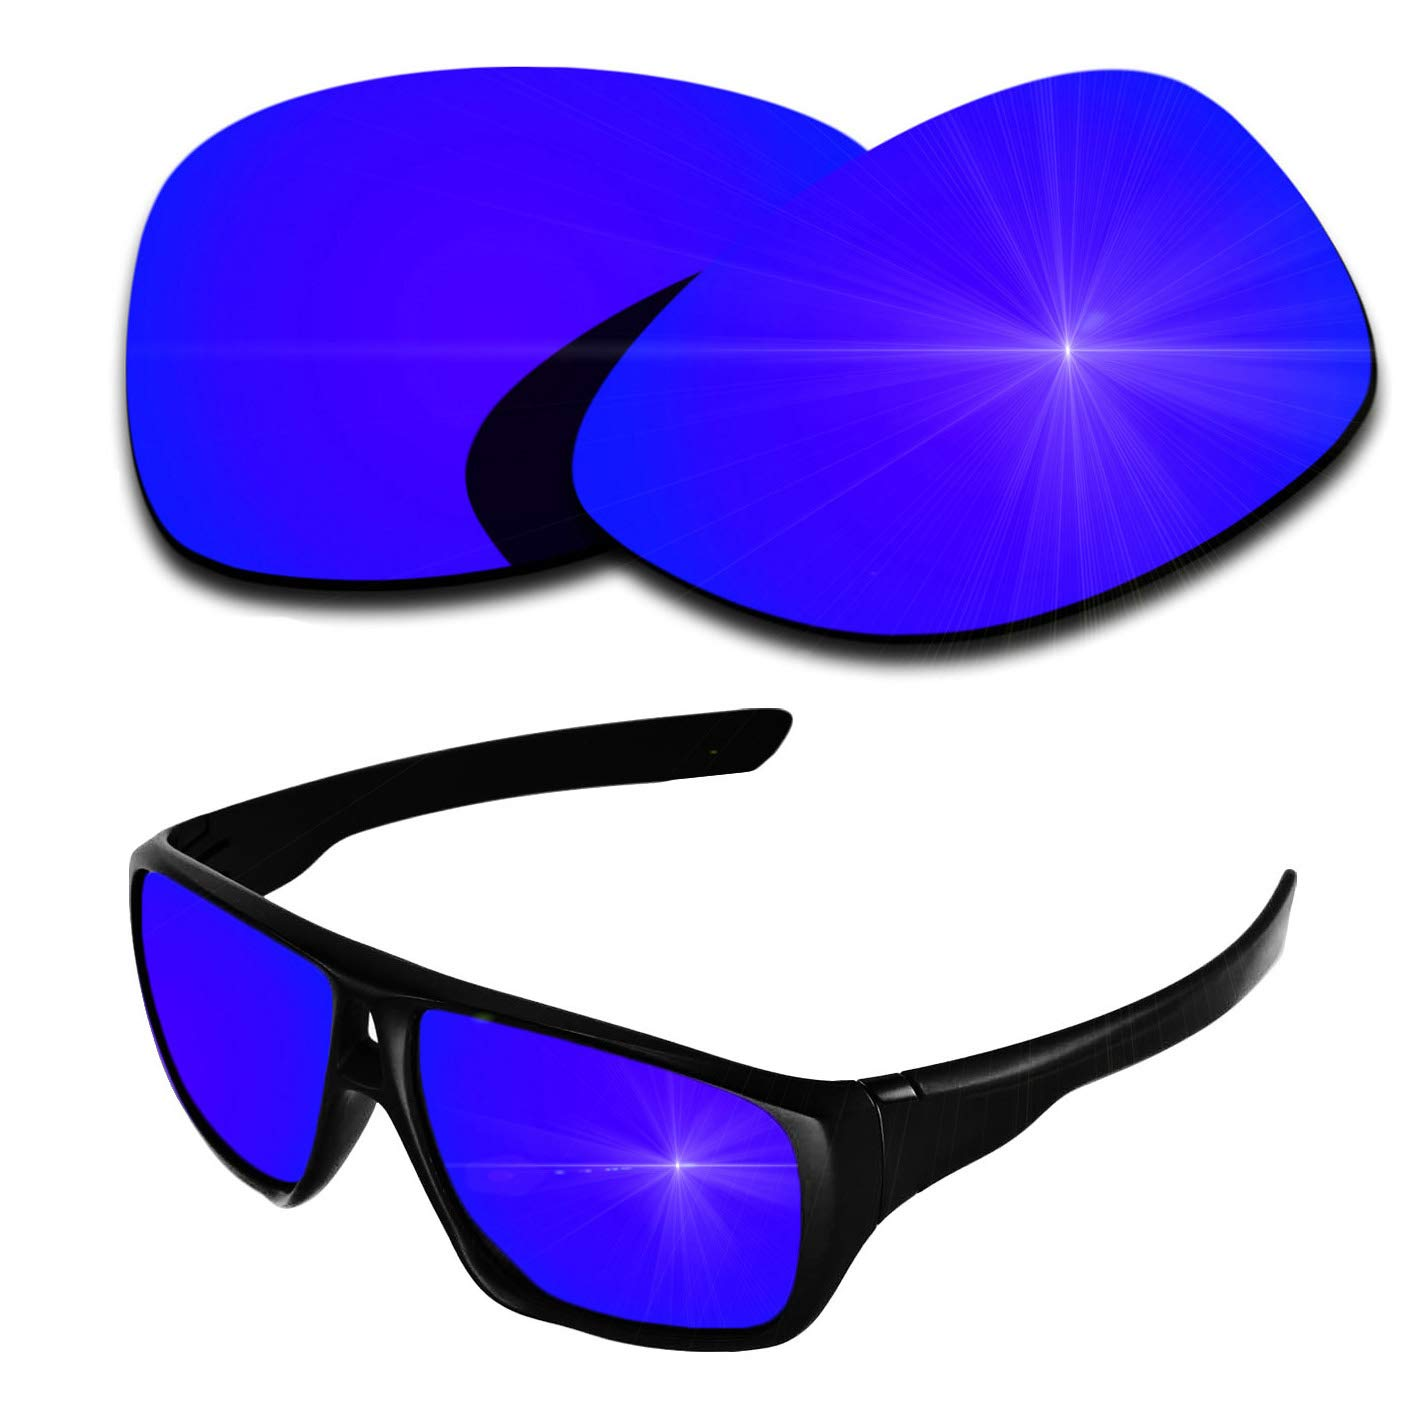 Polarized Replacement Lenses for Oakley Dispatch 2 - Purple Violet Mirrored Coating by PazzerBy